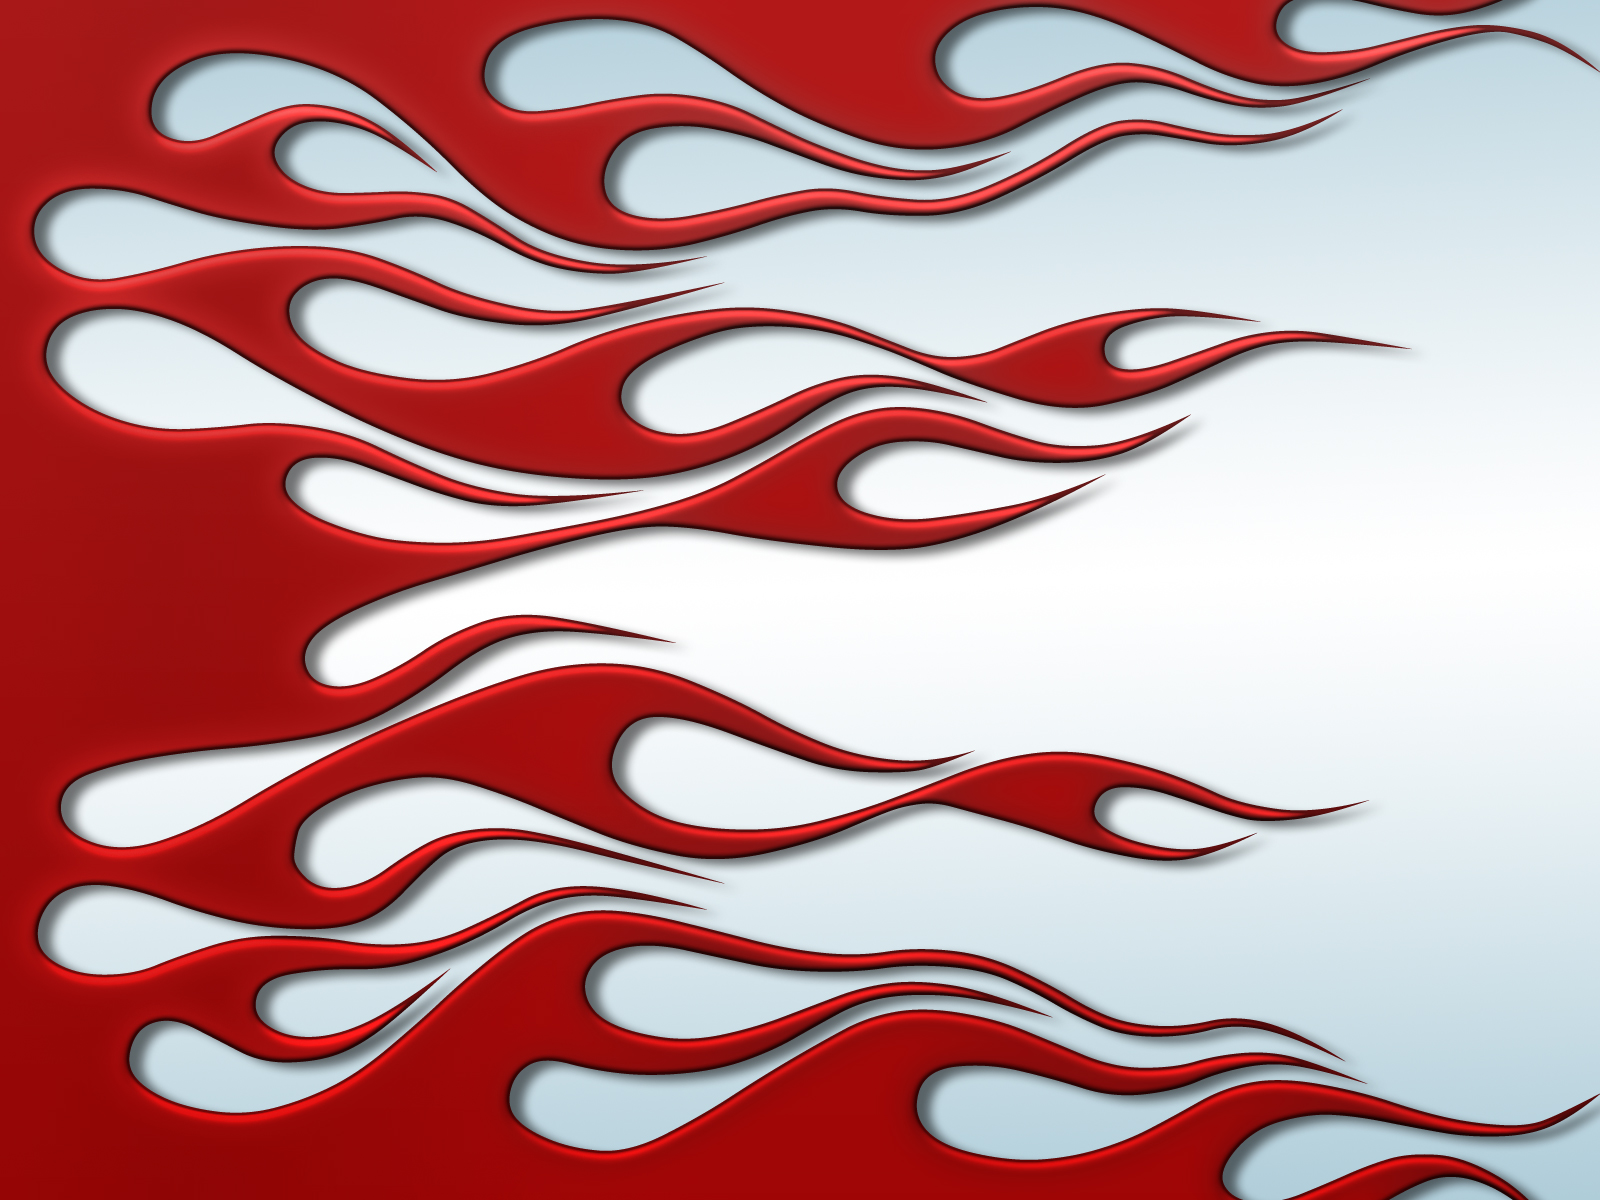 Flames clipart powerpoint Flames On Red White Template